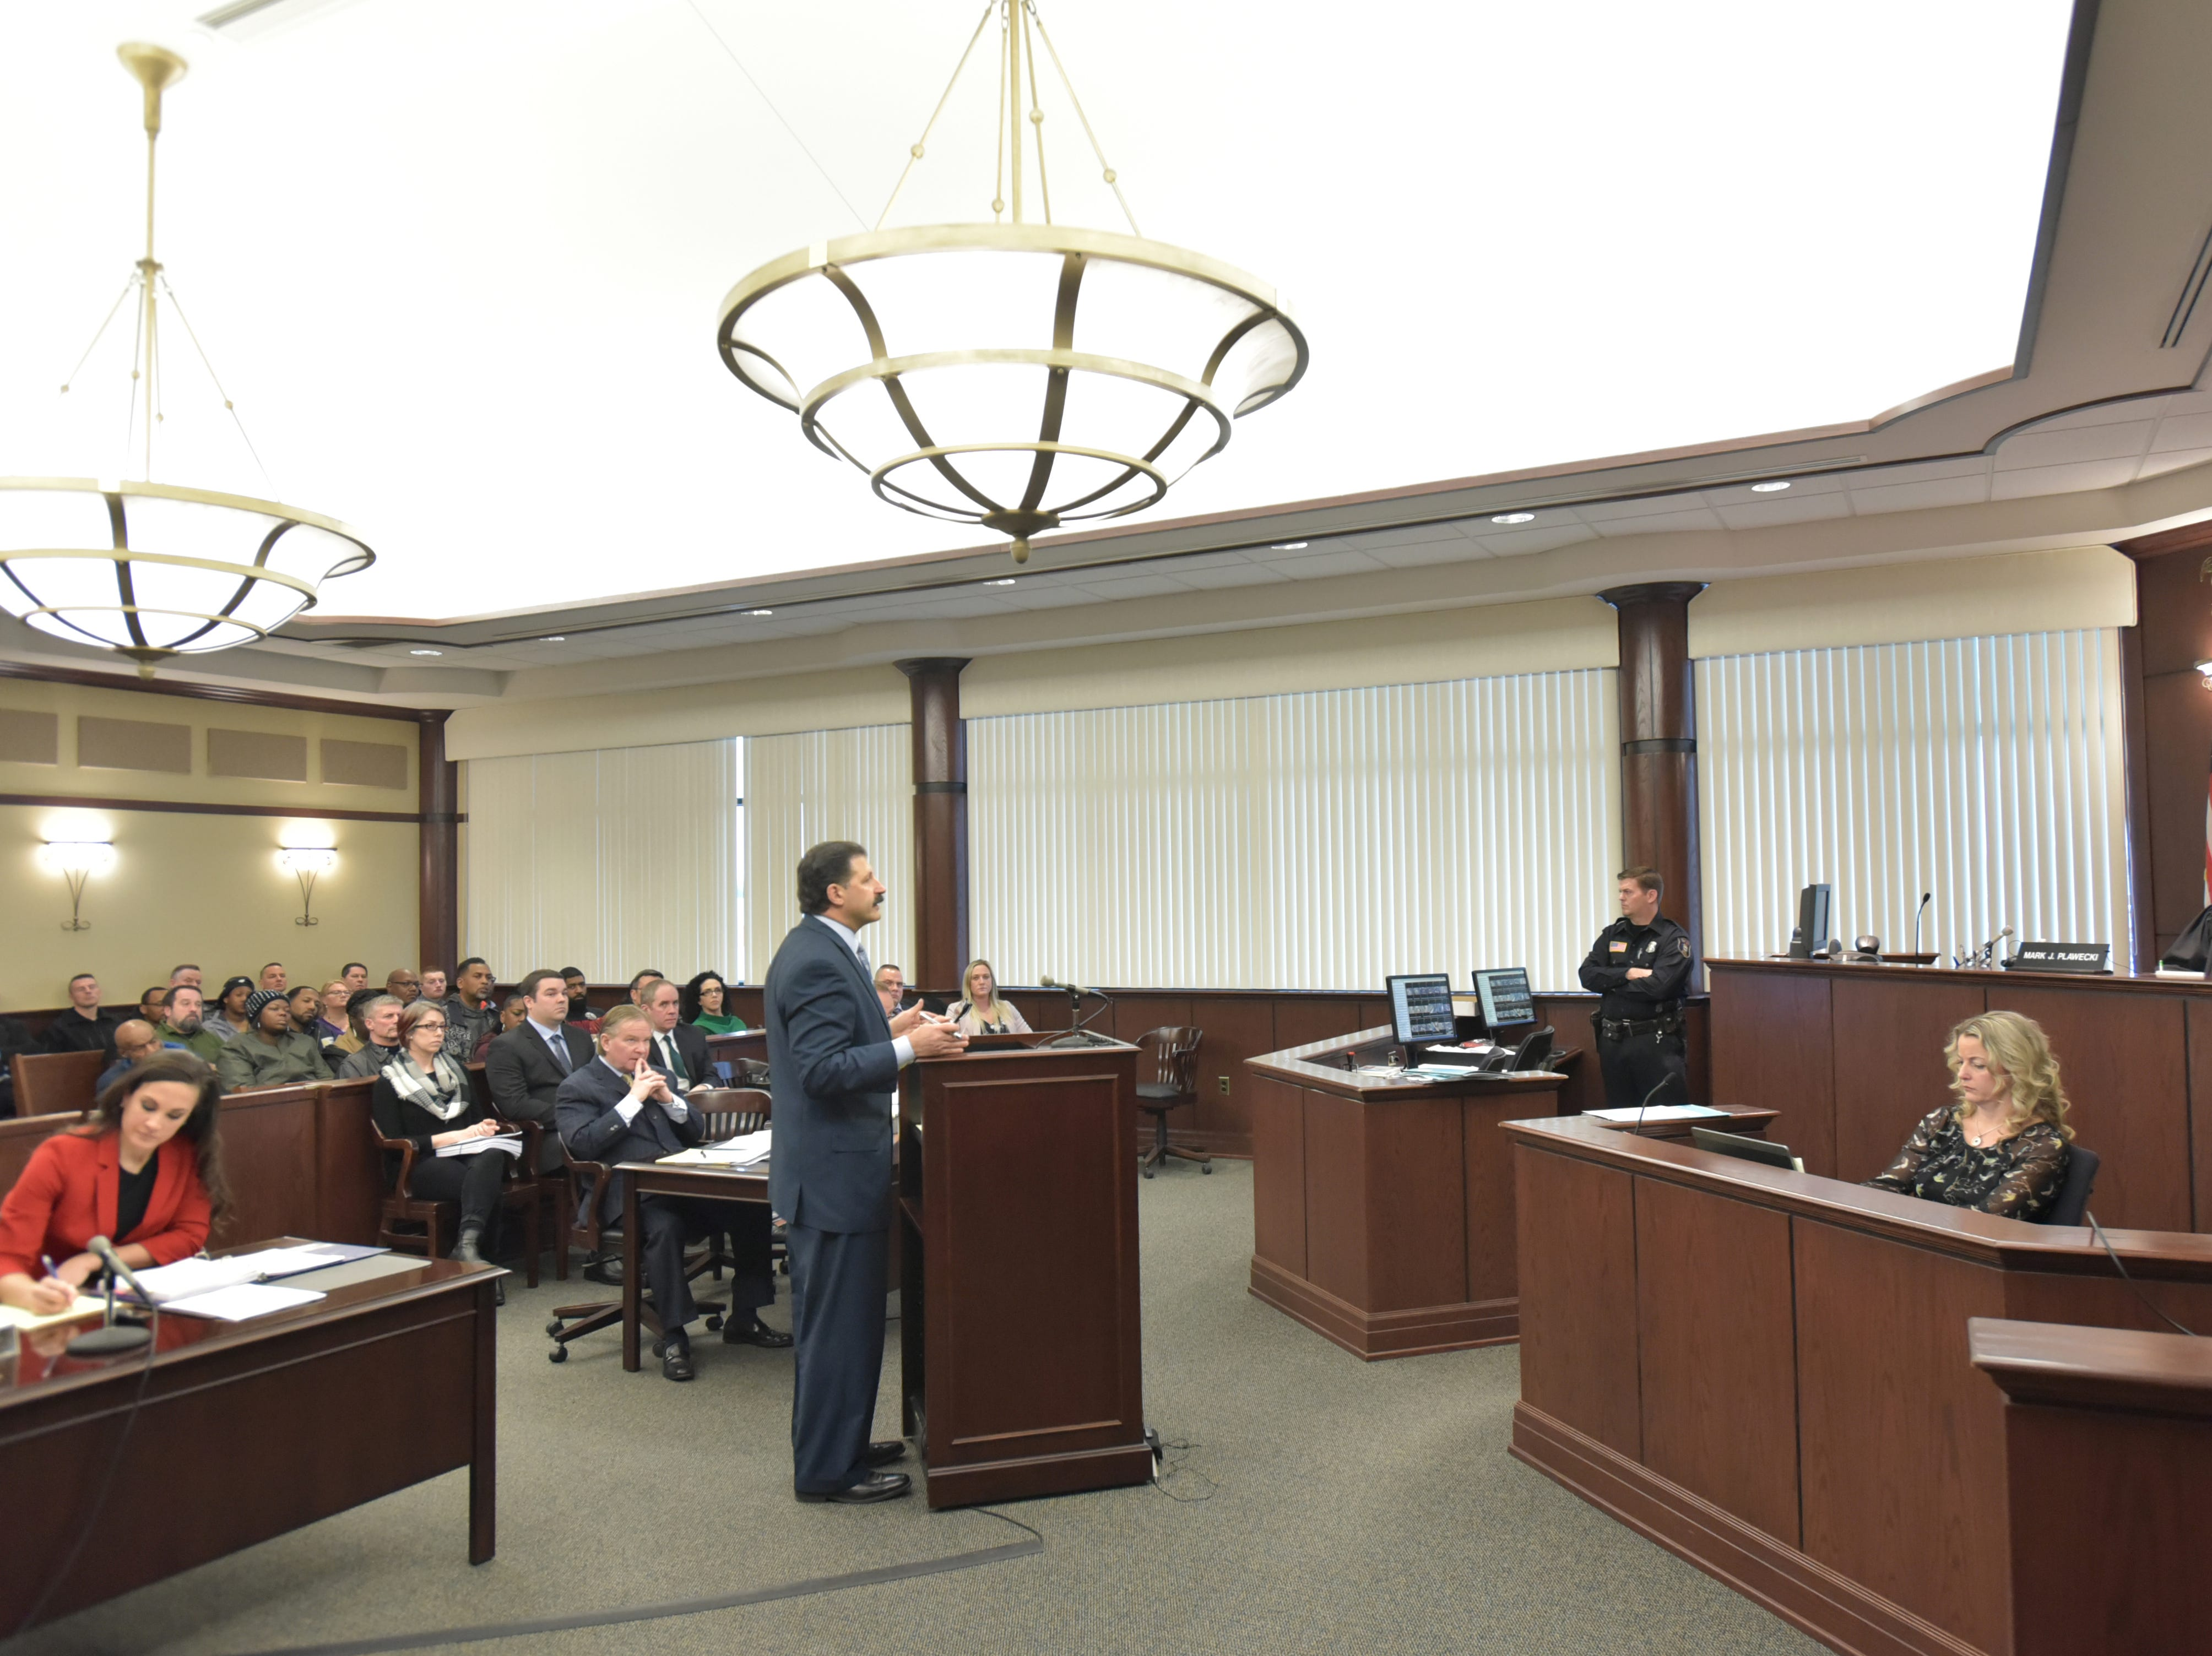 Attorney Marc Hart, representing paramedic Matt Dicosola, discusses the case against his client with Judge Mark Plawecki in the Dearborn Heights courtroom on Jan. 18.